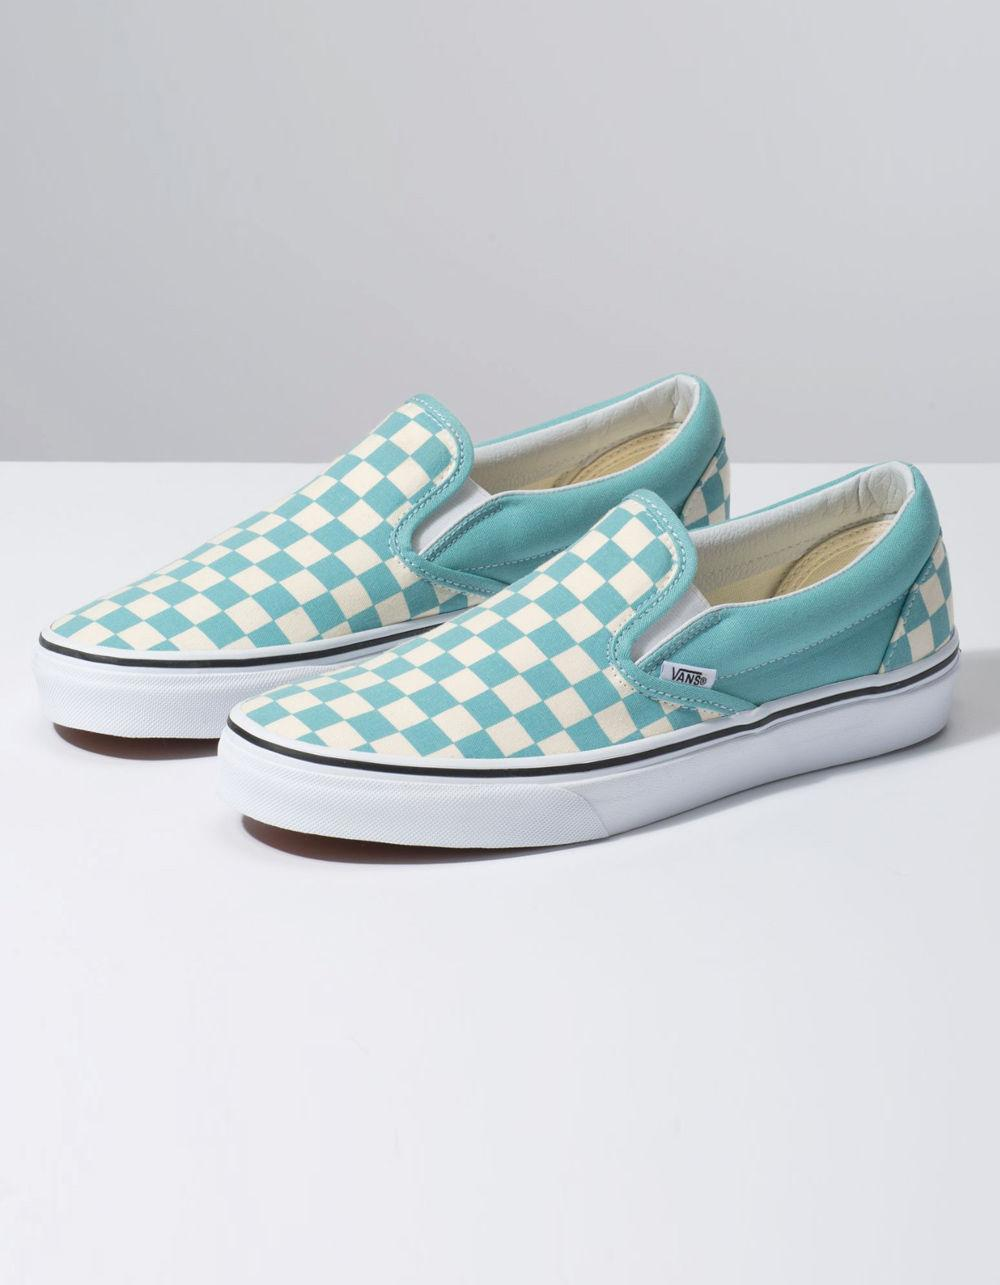 4556cad49c40 Lyst - Vans Checkerboard Classic Slip-on Aqua Haze   True White Shoes